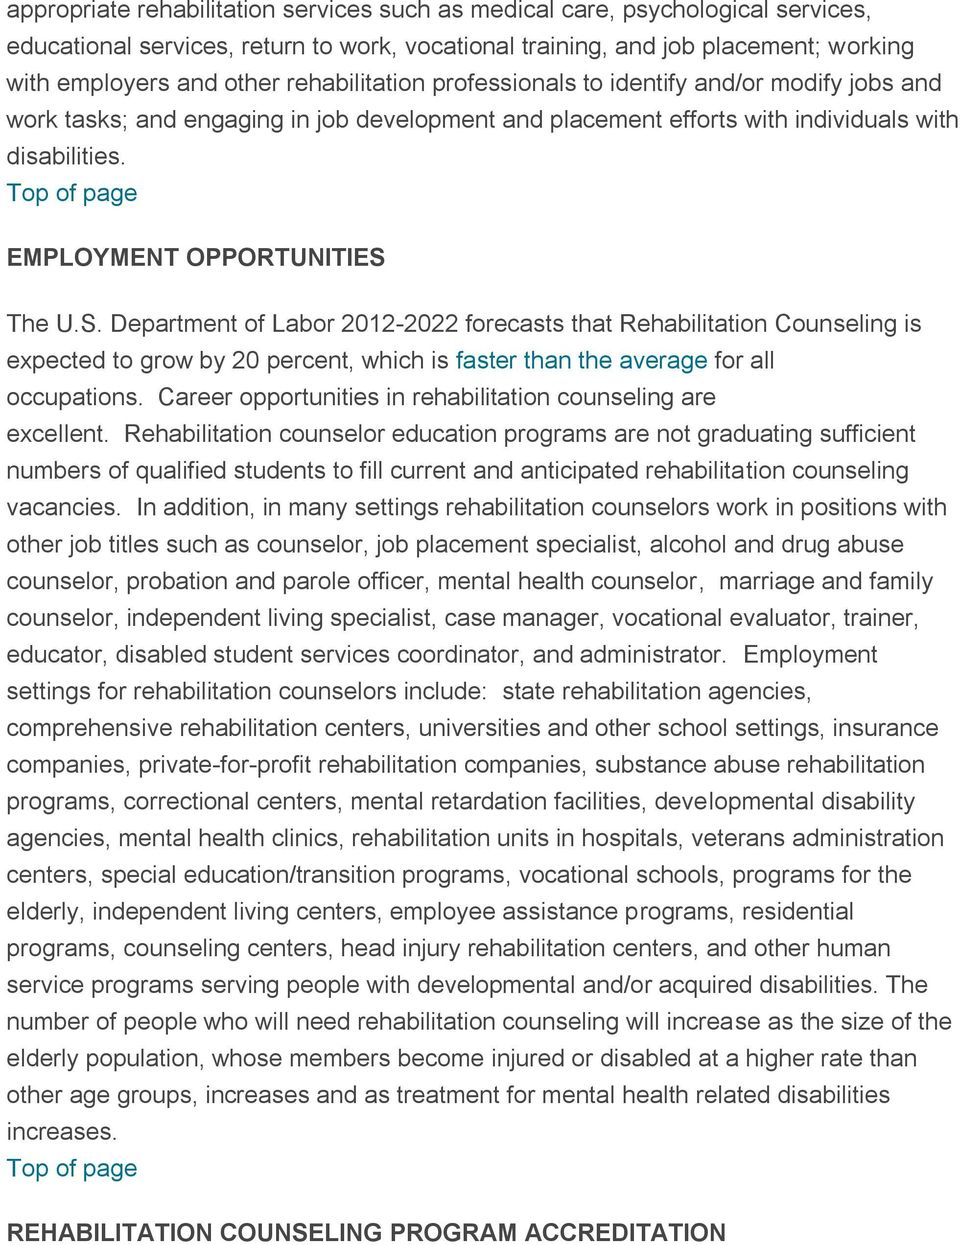 The U.S. Department of Labor 2012-2022 forecasts that Rehabilitation Counseling is expected to grow by 20 percent, which is faster than the average for all occupations.